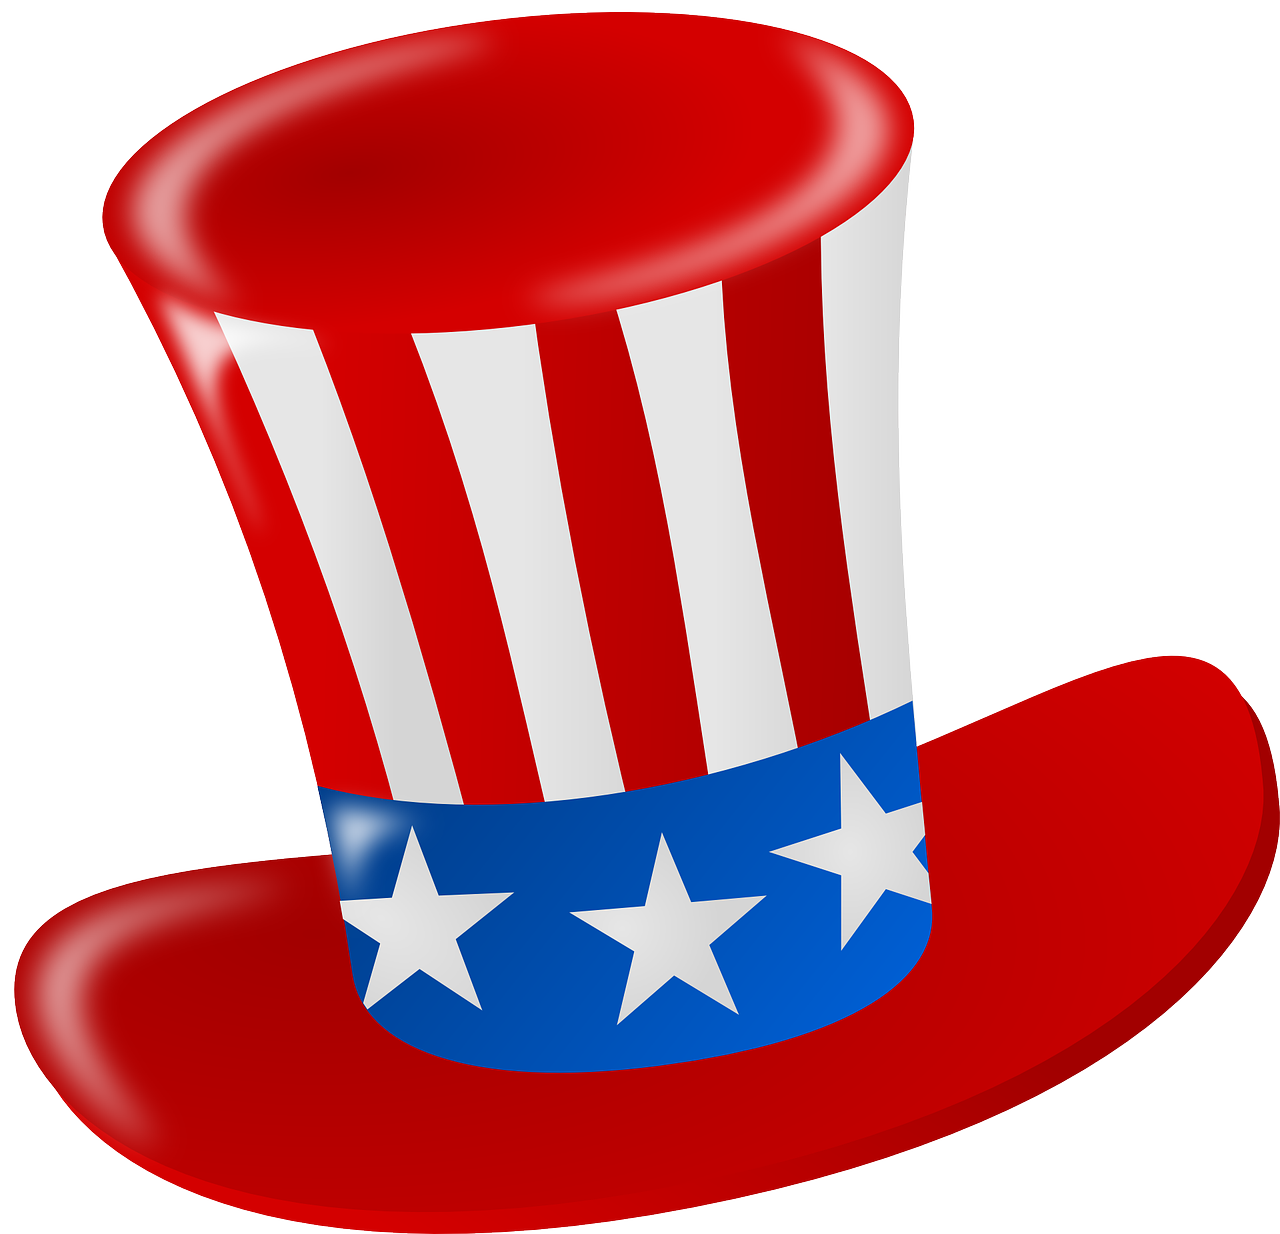 hat,america,uncle sam,uncle sam hat,independence day,american,party,united states,independence,national,stars,stripes,symbol,patriotic,free vector graphics,free pictures, free photos, free images, royalty free, free illustrations, public domain